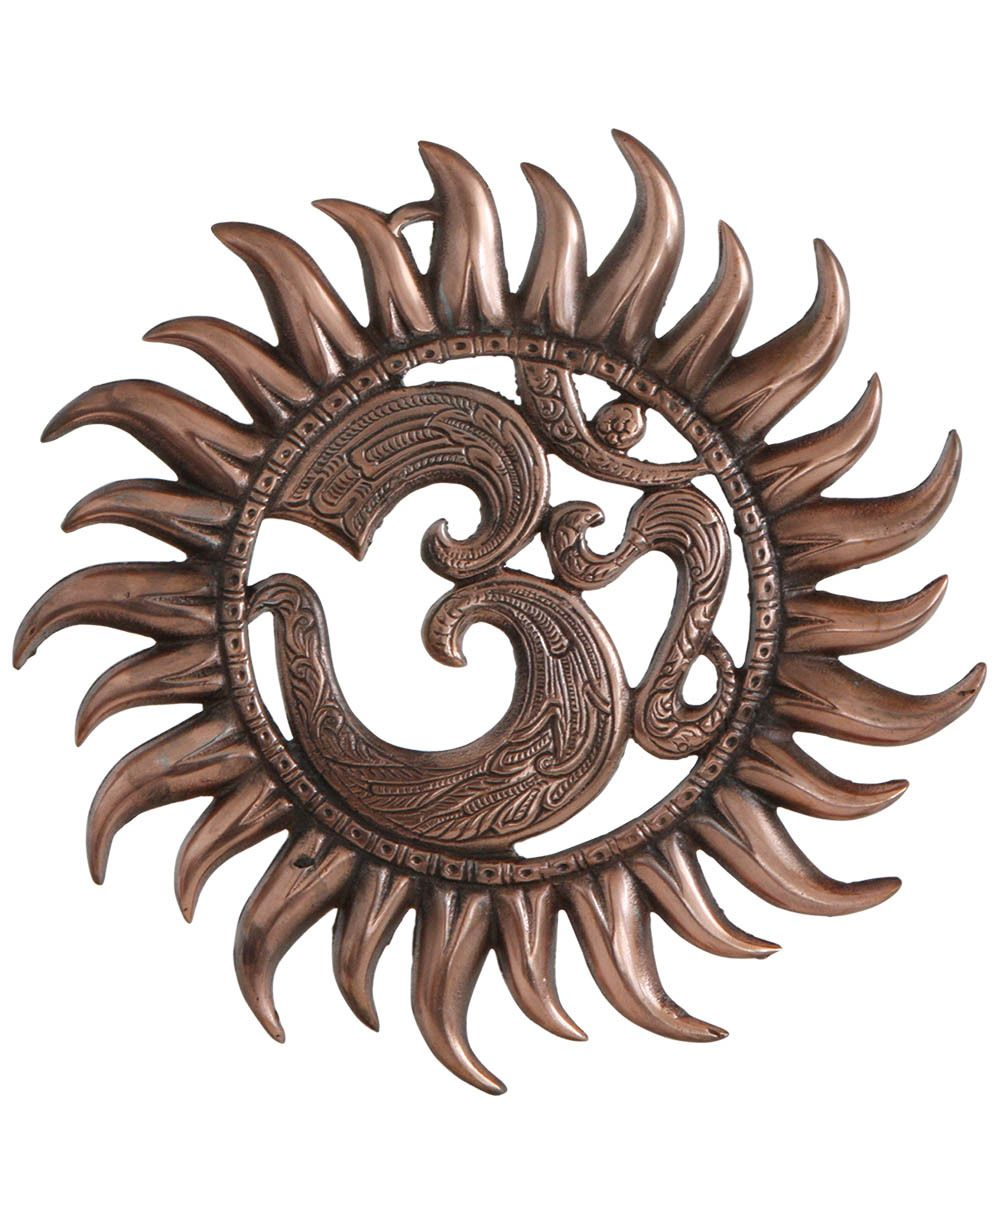 Om Sun Wall Hanging With Copper Colored Finish Buddha Wall Art Wall Hanging Groove Metal